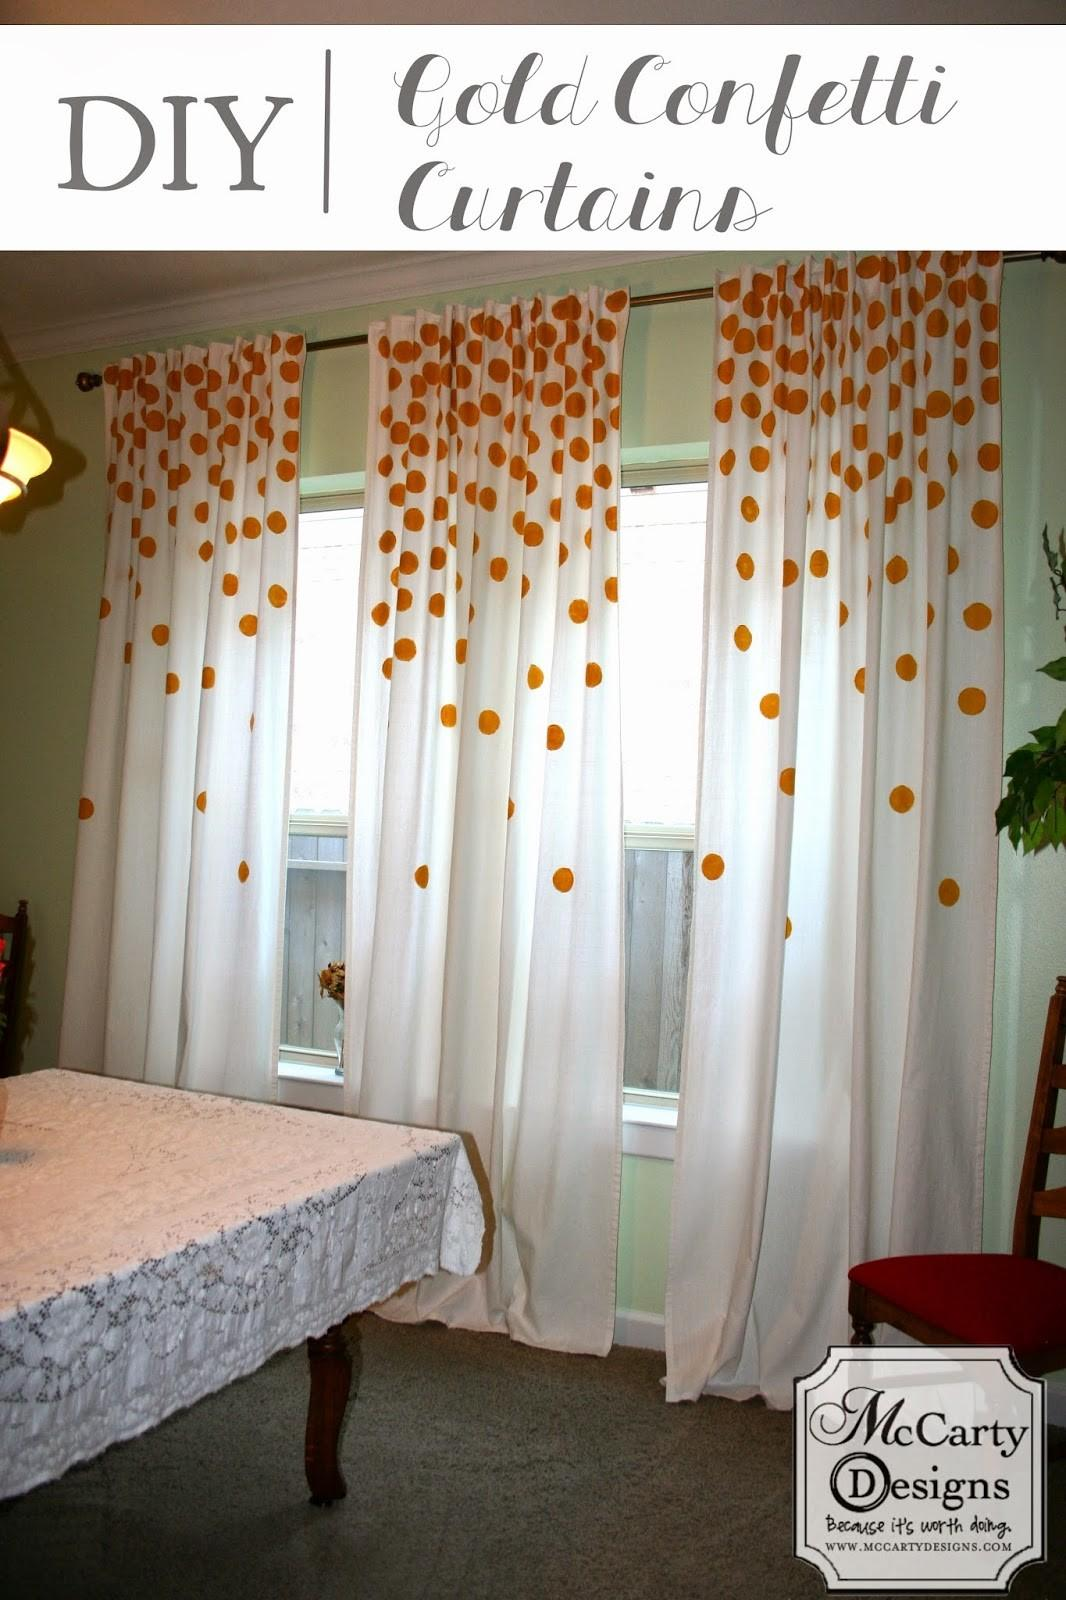 Diy Gold Confetti Curtains Mccarty Adventures